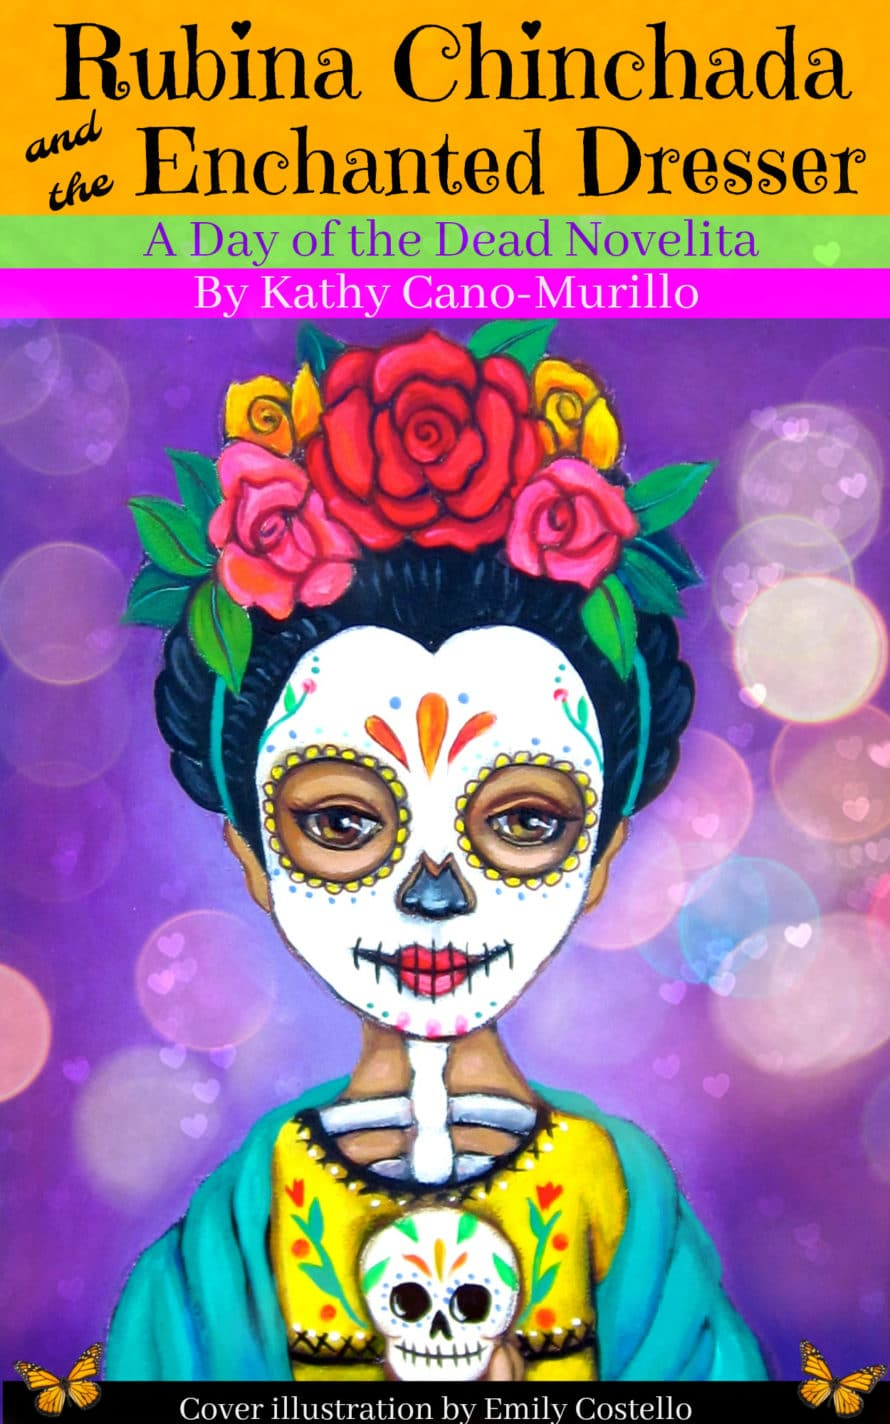 a Day of the Dead short story! #craftychica #diadelosmuertos #latinafiction